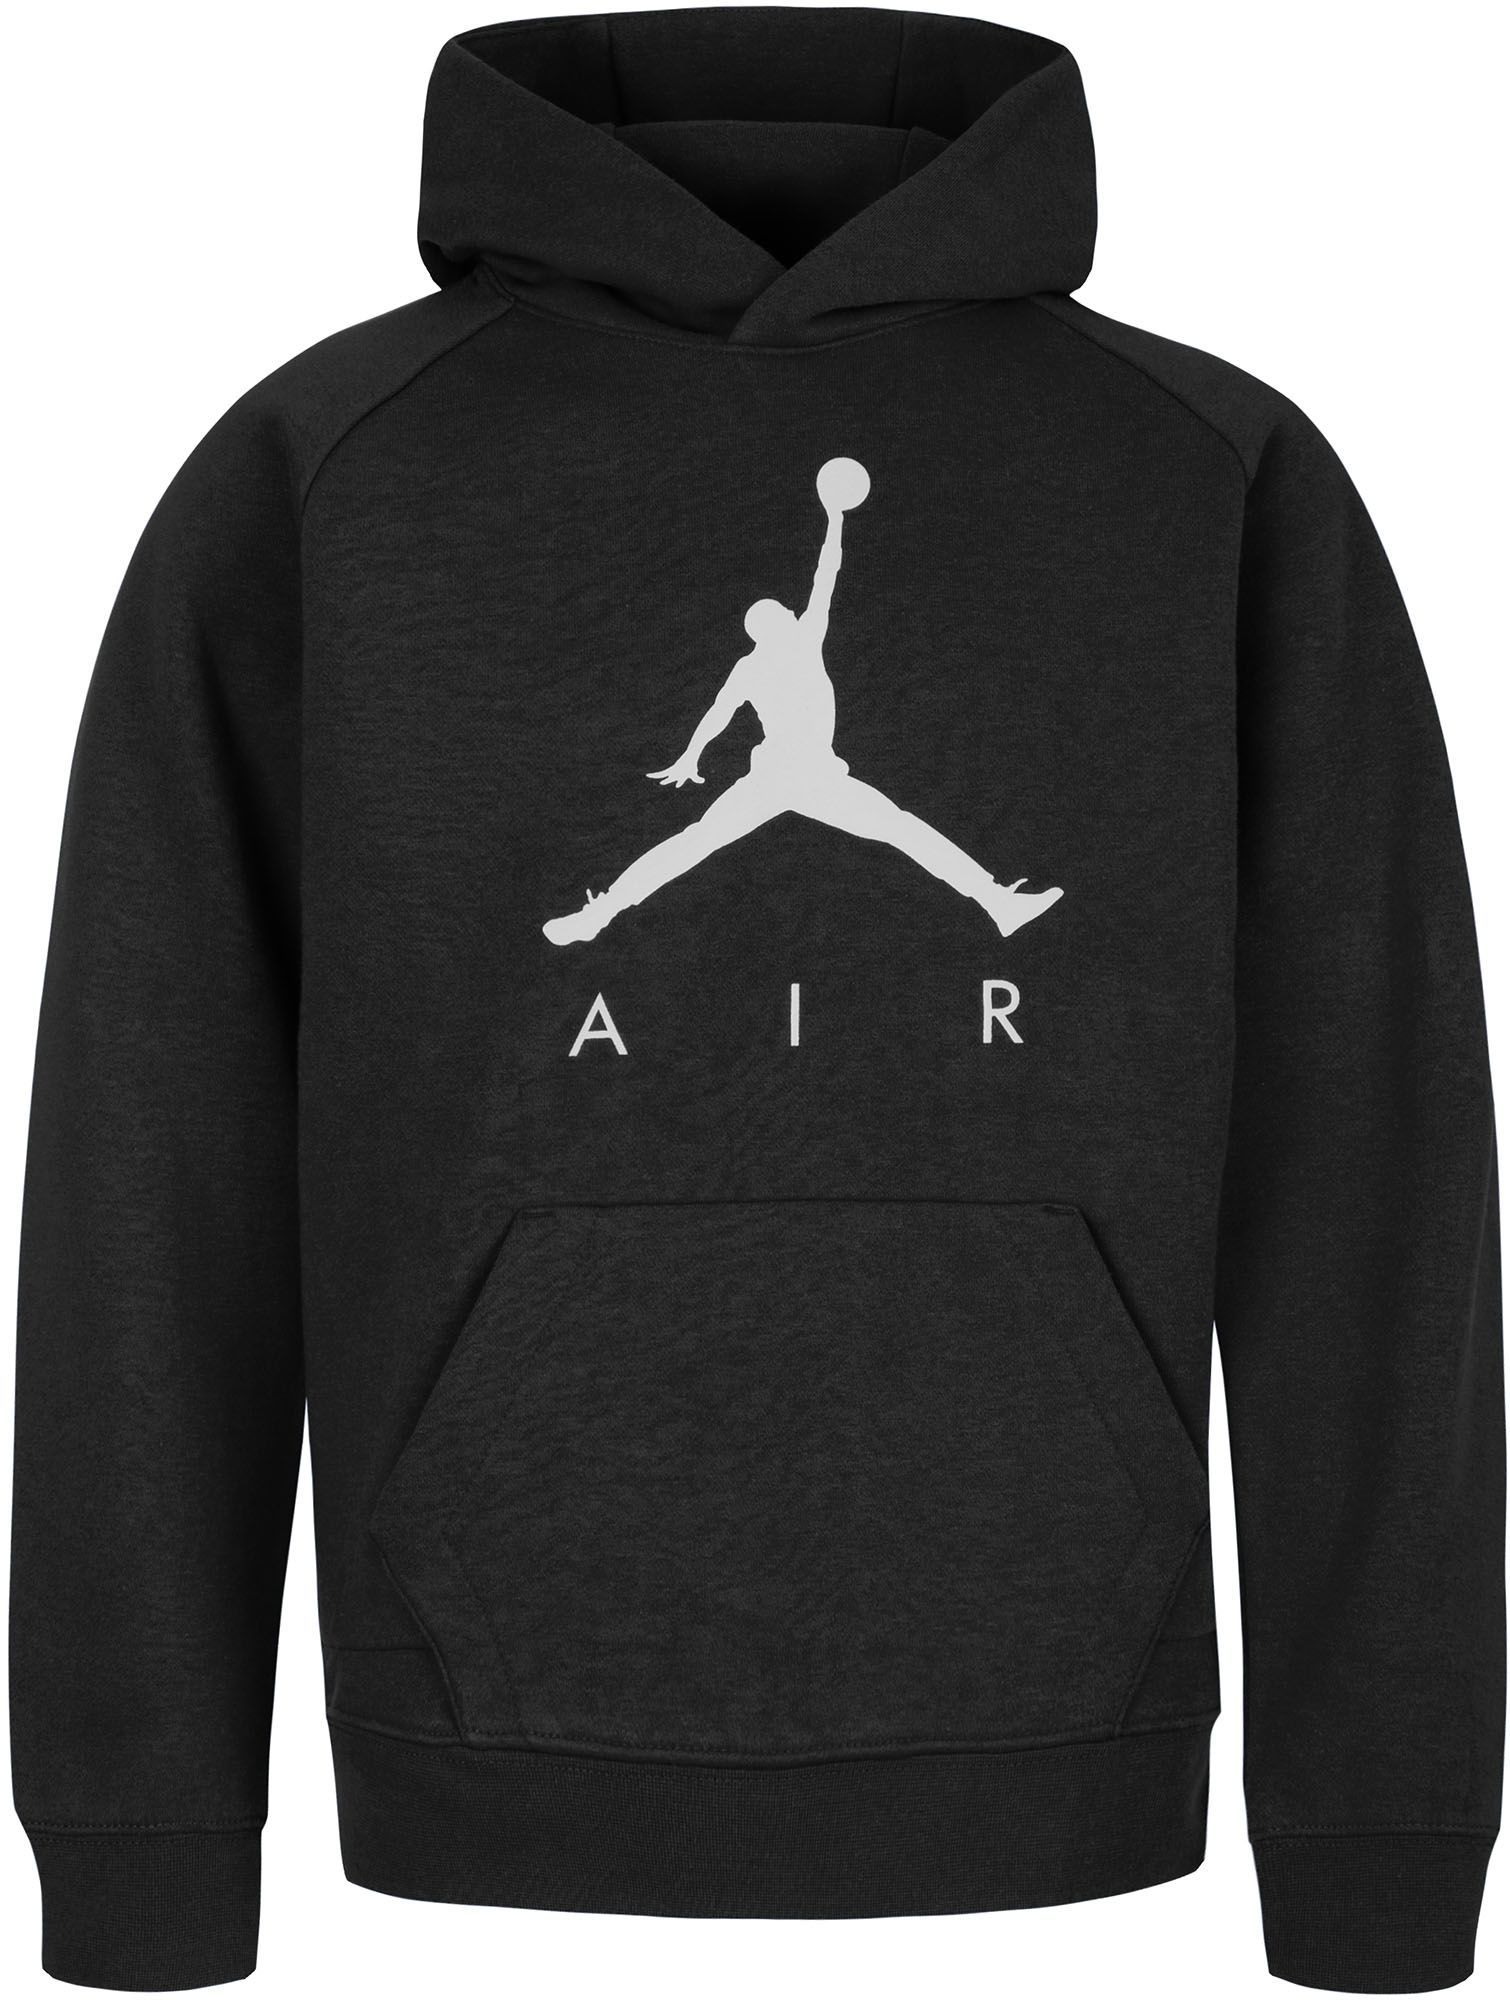 jordan boys\u0027 fleece pullover hoodie products boys, fleece hoodie Carbon 14 to Nitrogen 14 Beta Particle jordan boys\u0027 fleece pullover hoodie, black